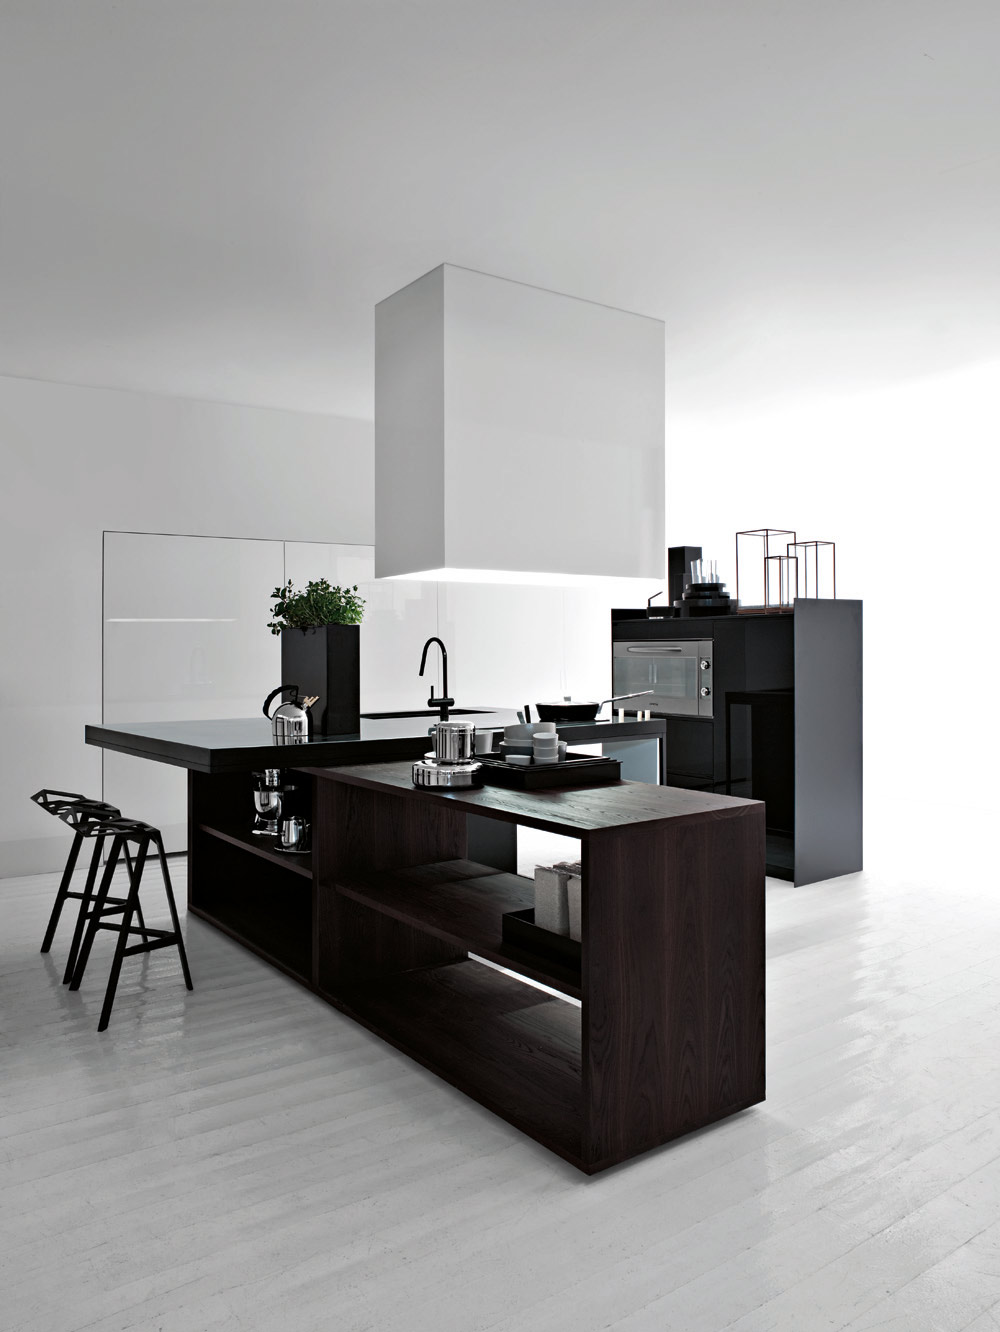 Black and white kitchen interior design ideas for Black white kitchen designs